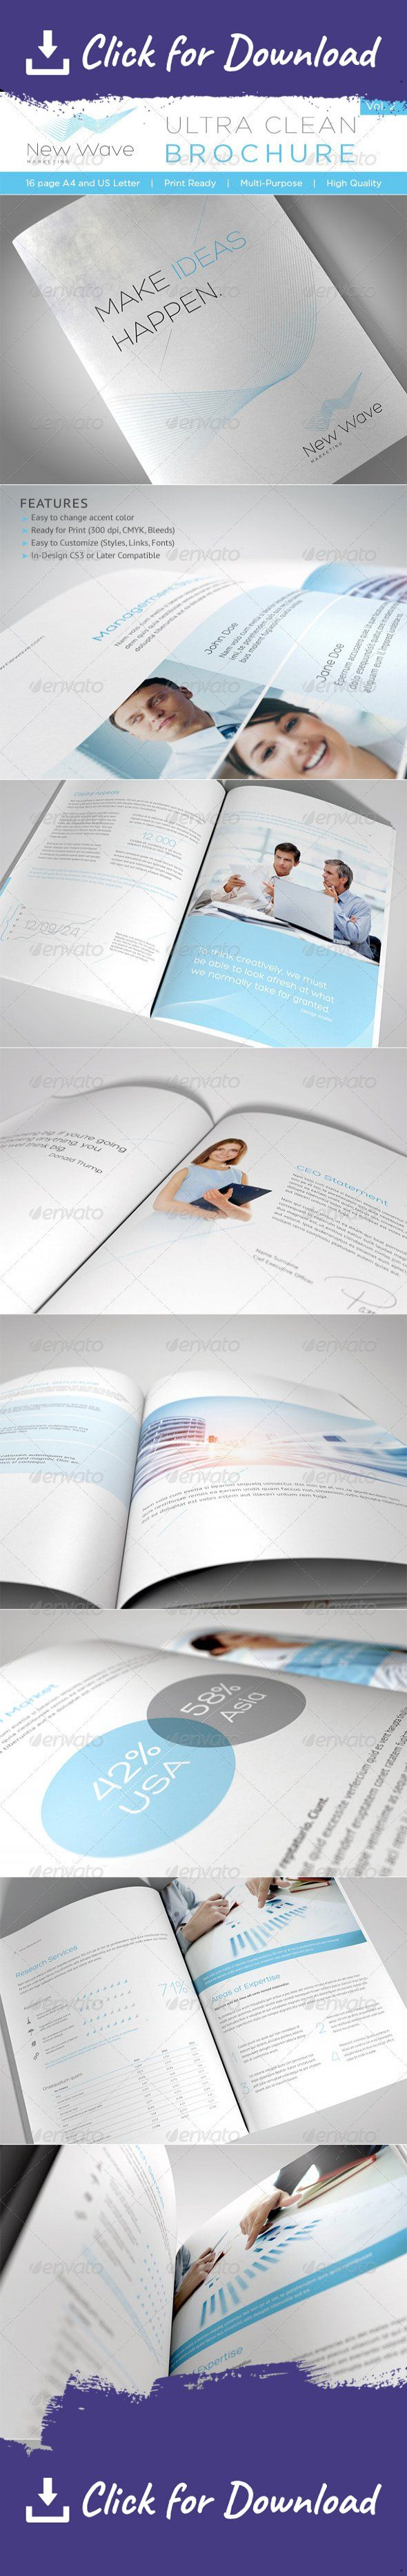 a4, blue, booklet, brochure, business, clean, conceptual, corporate, customize, designer, easy, flexible, identity, indesign template, letter, light, lines, logo, minimal, modern, PDF file, print, print ready, professional, simple, stylish, template, ultra clean, white    	   	This is a 16 page professional In-Design brochure perfect for corporate business that needs clean, professional, modern brochure template design.   	Easy to edit, you can change blue accent color throughout the whole…